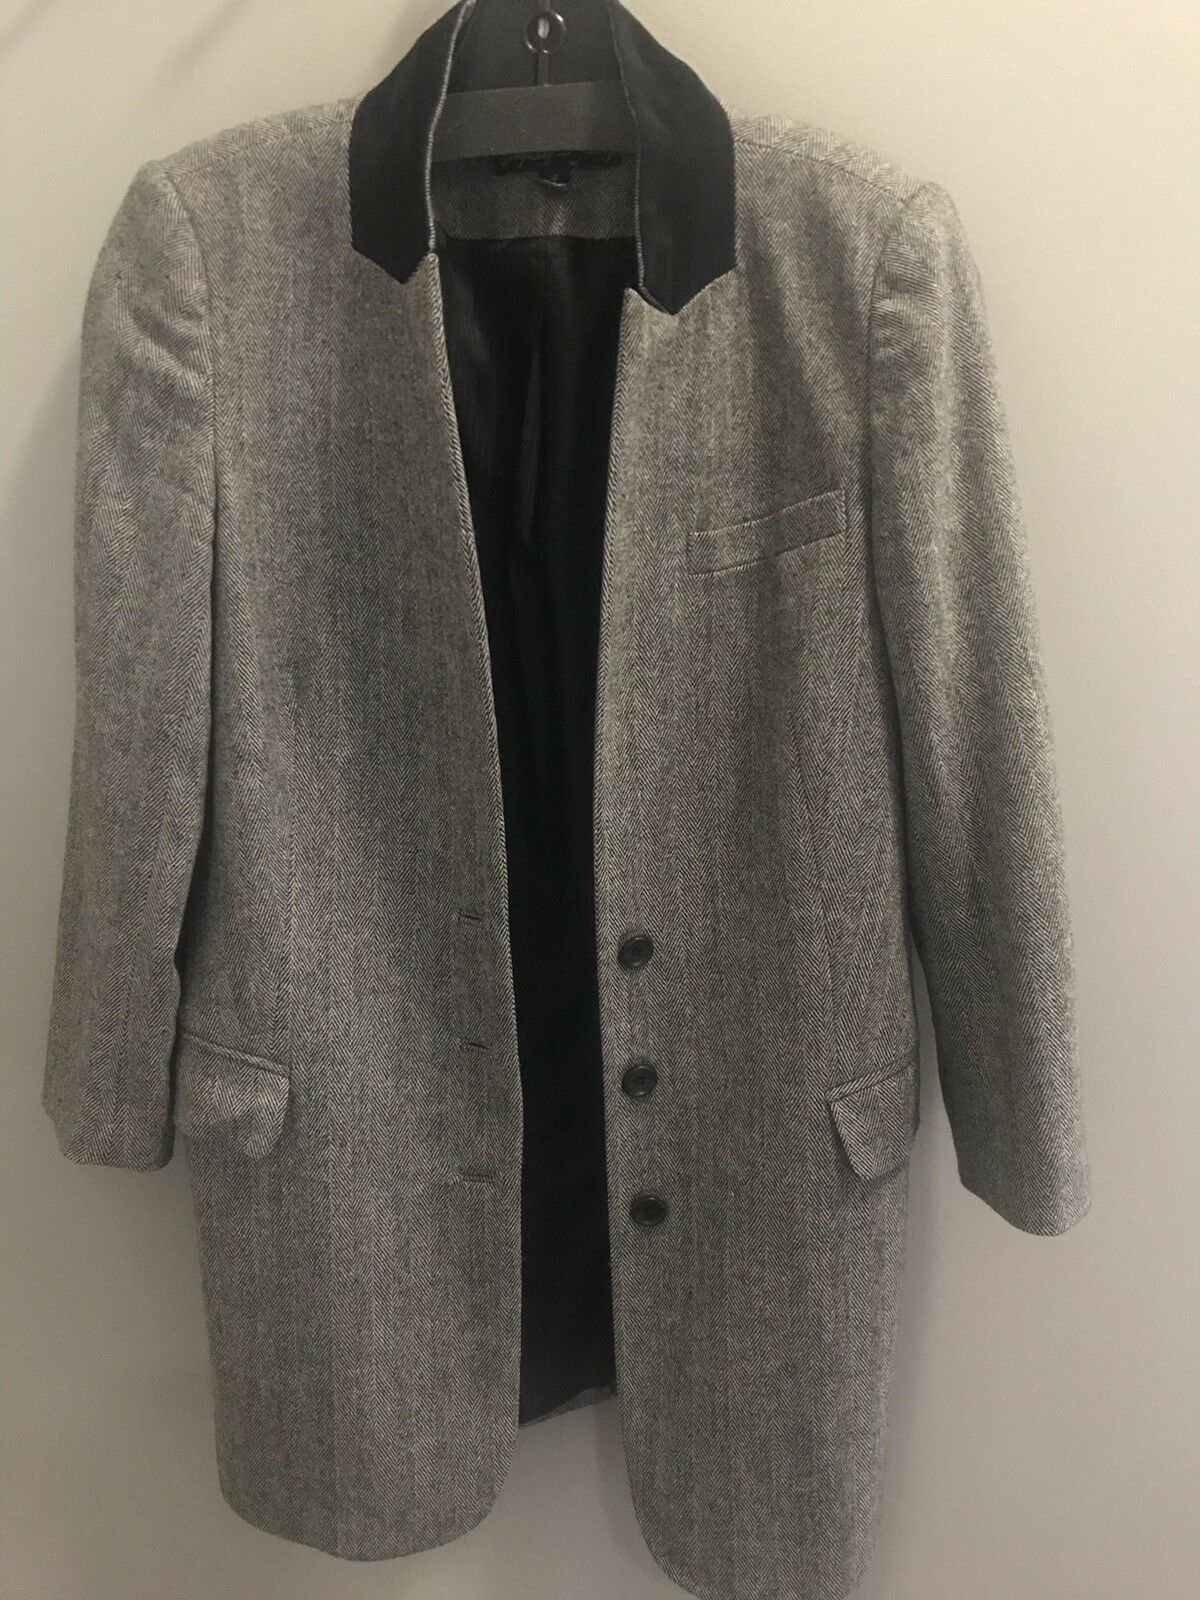 Elizabeth and James Blazer Jkt Size 2